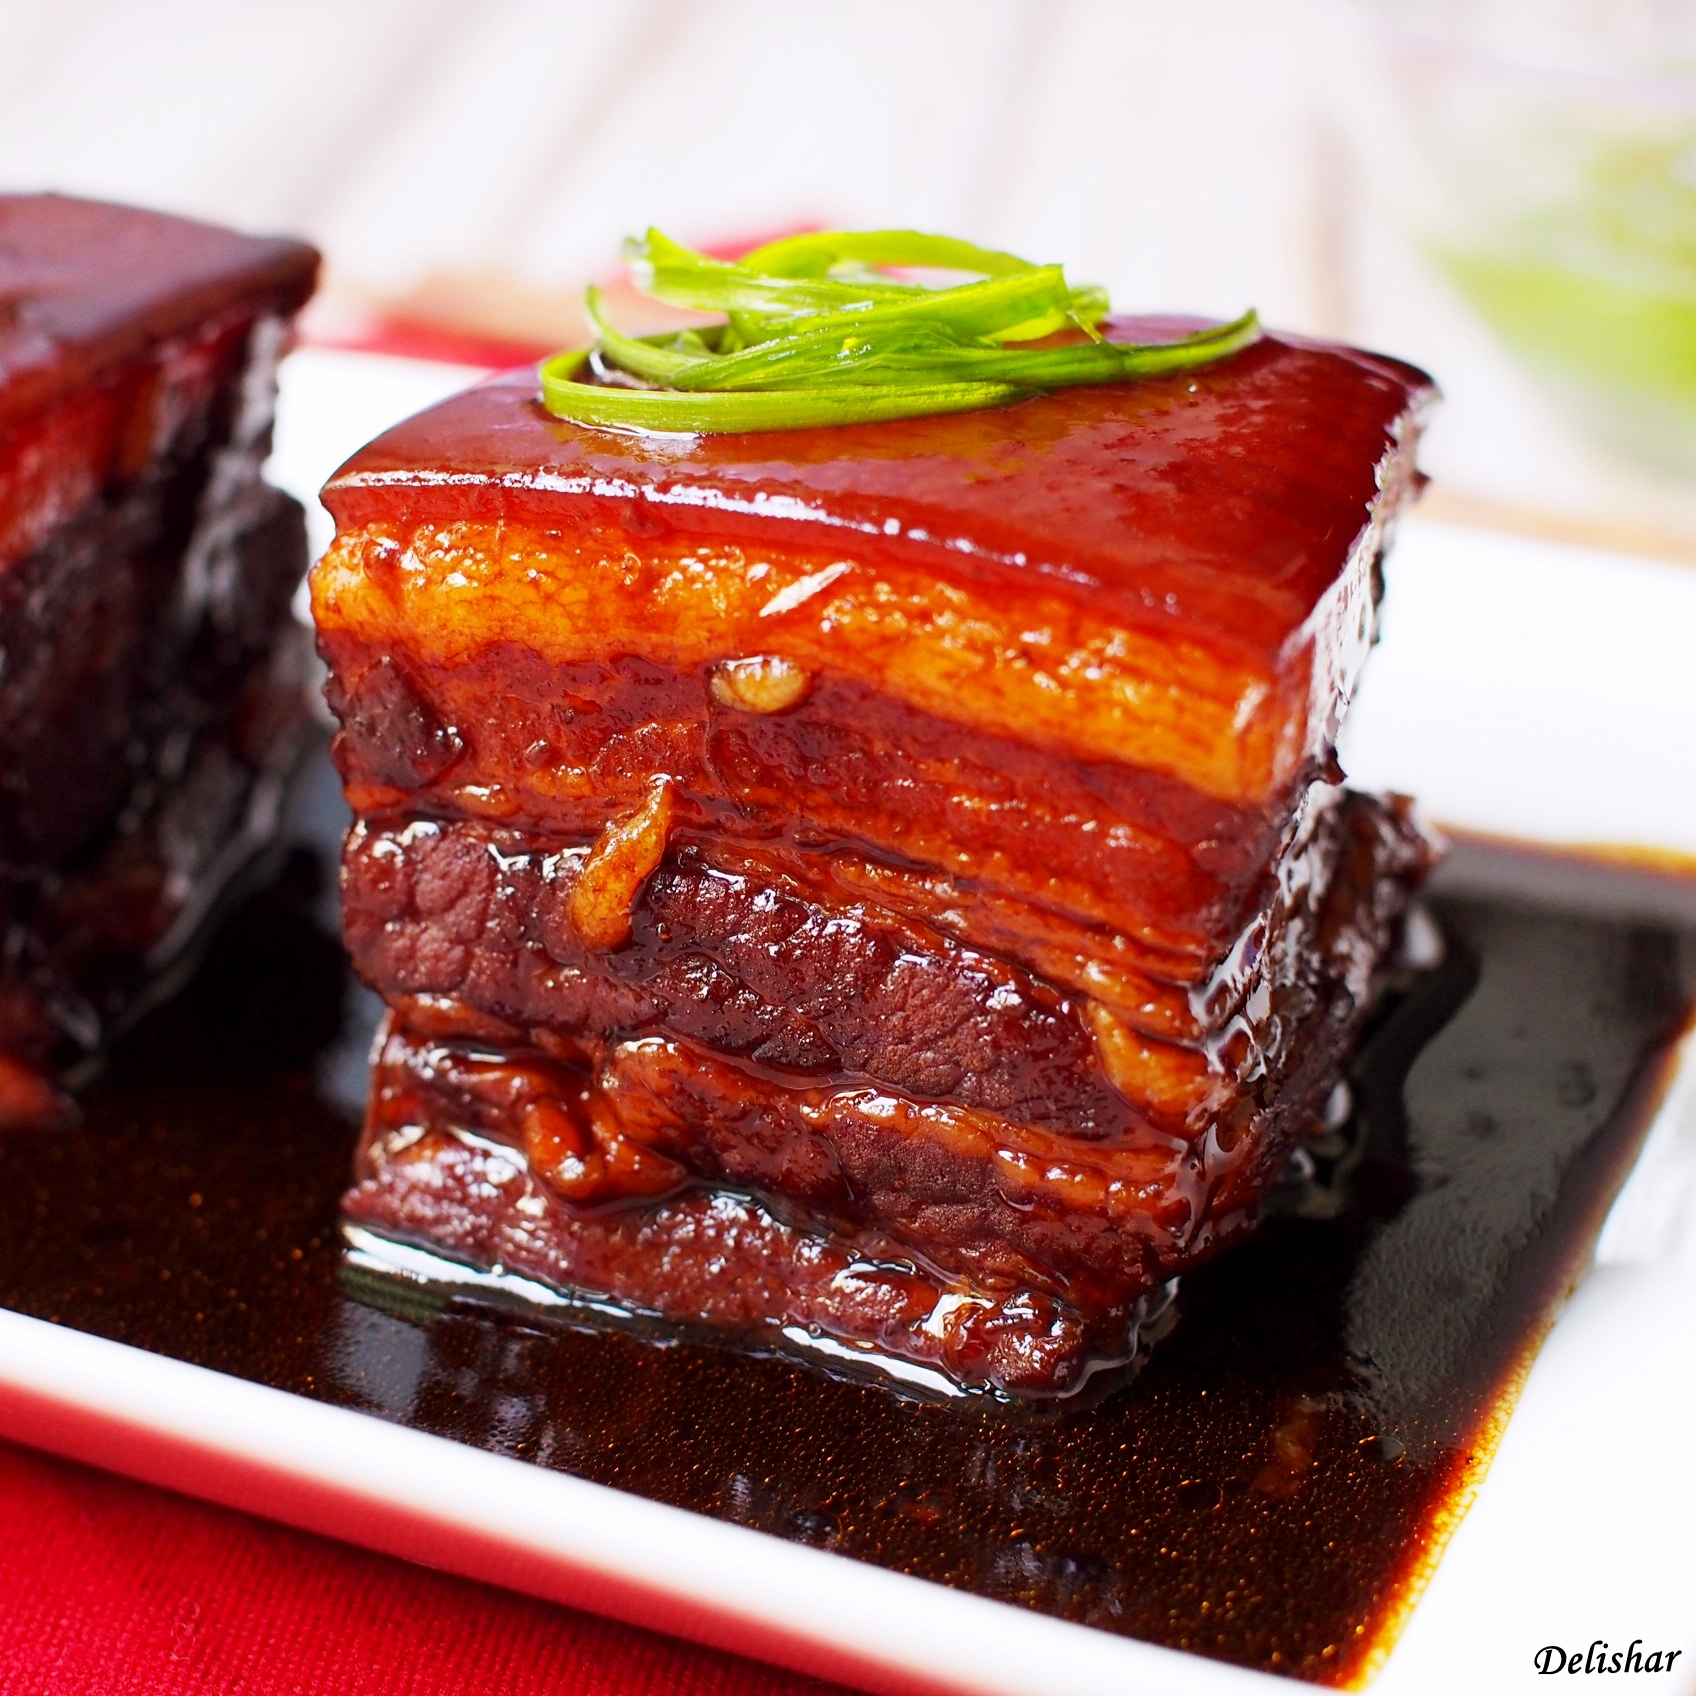 Dong Po Rou Braised Pork Belly Delishar Singapore Cooking Recipe And Food Blog